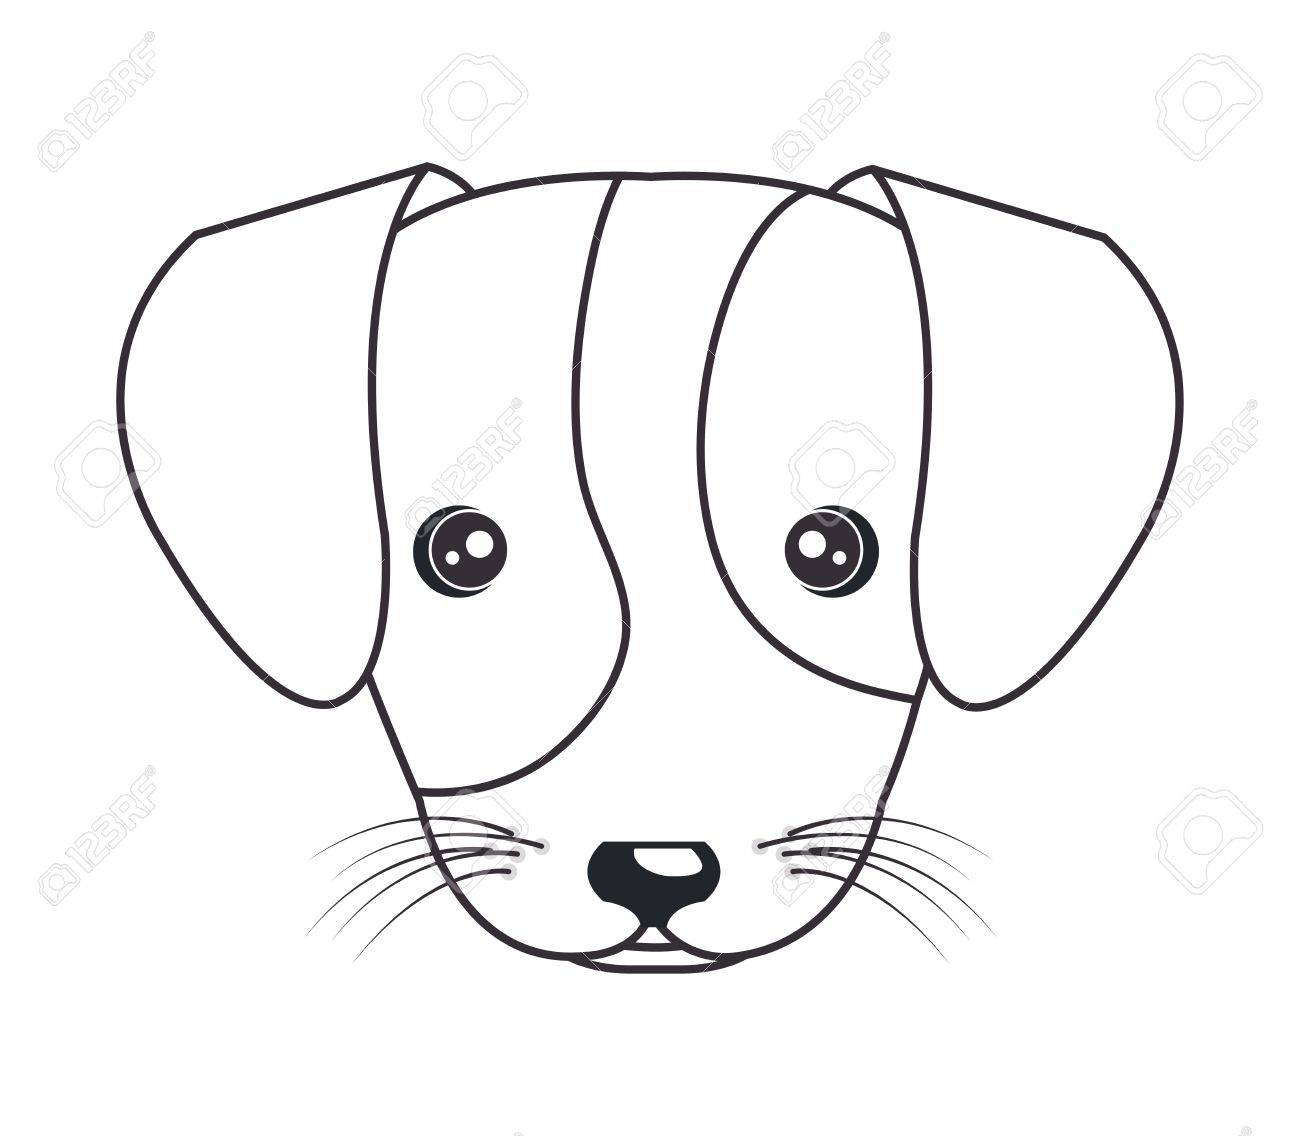 1300x1136 Cartoon Cute Puppy Hand Draw Vector Illustration Eps 10 Royalty